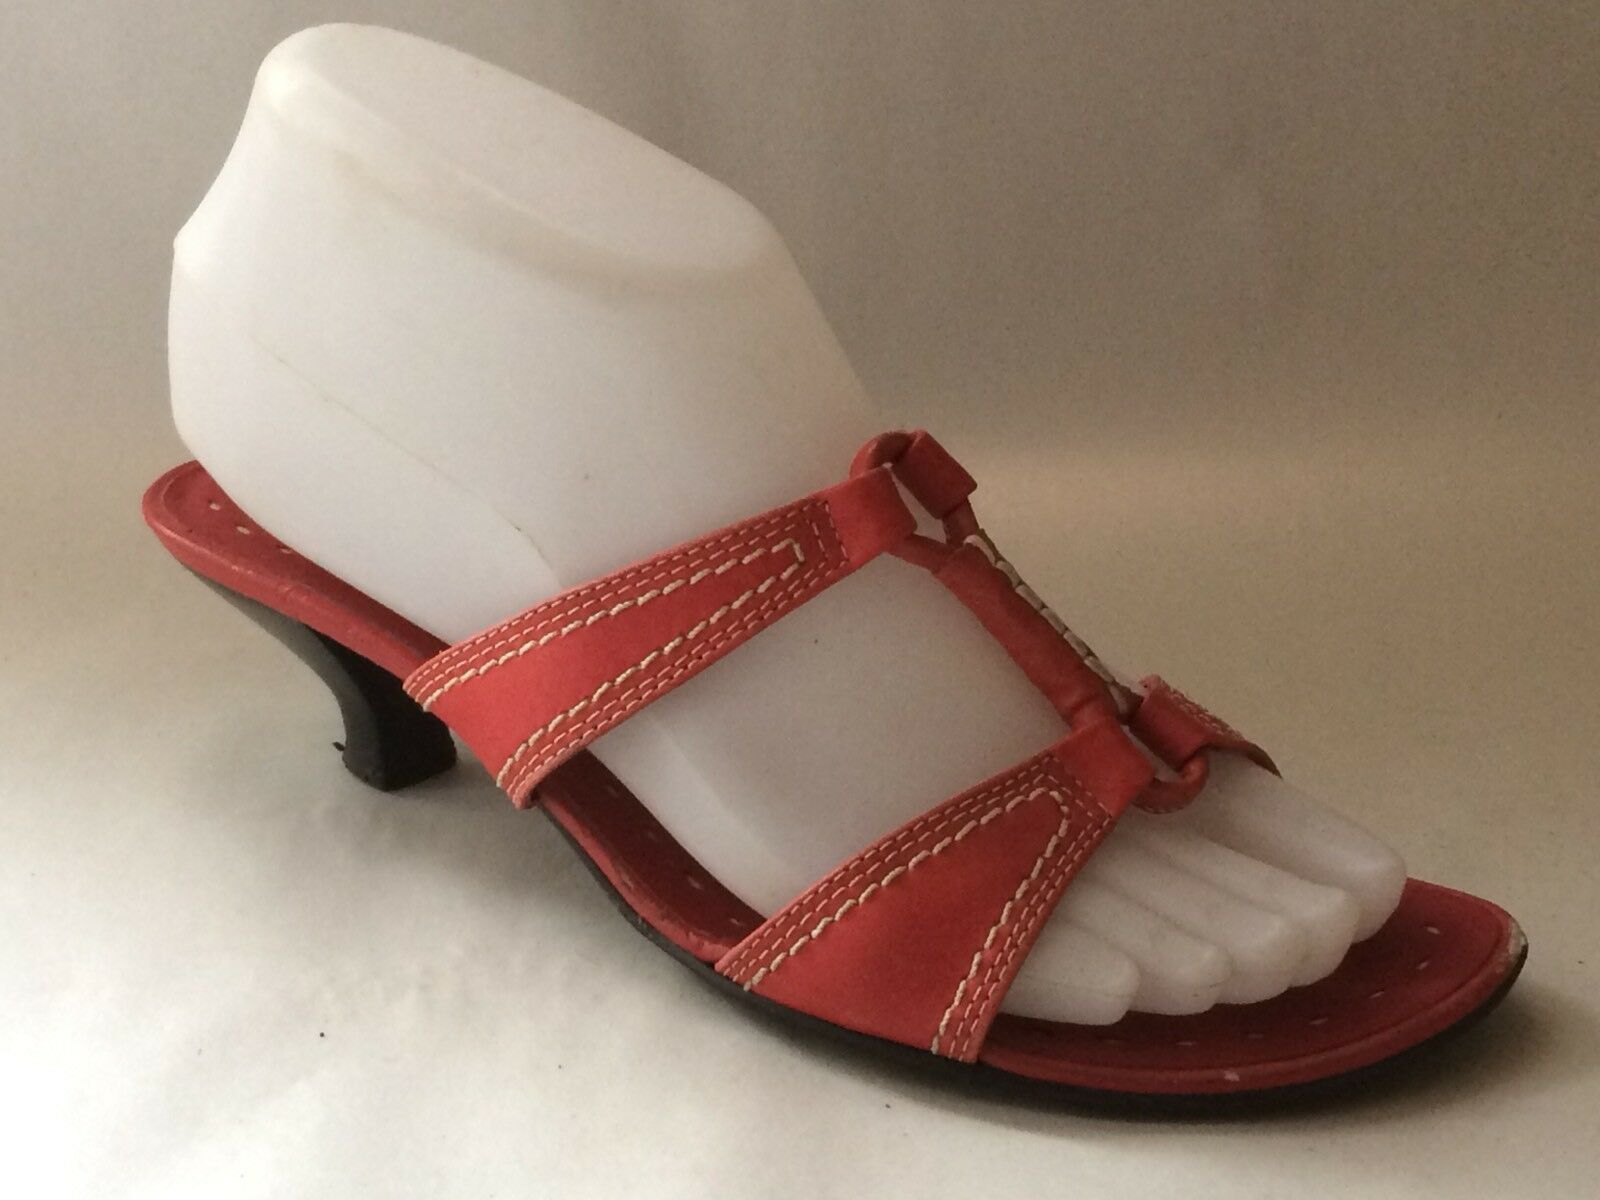 Franco Sarto Womens 6.5 M Red Slides Sandals Kitten Heels shoes Strappy Open Toe